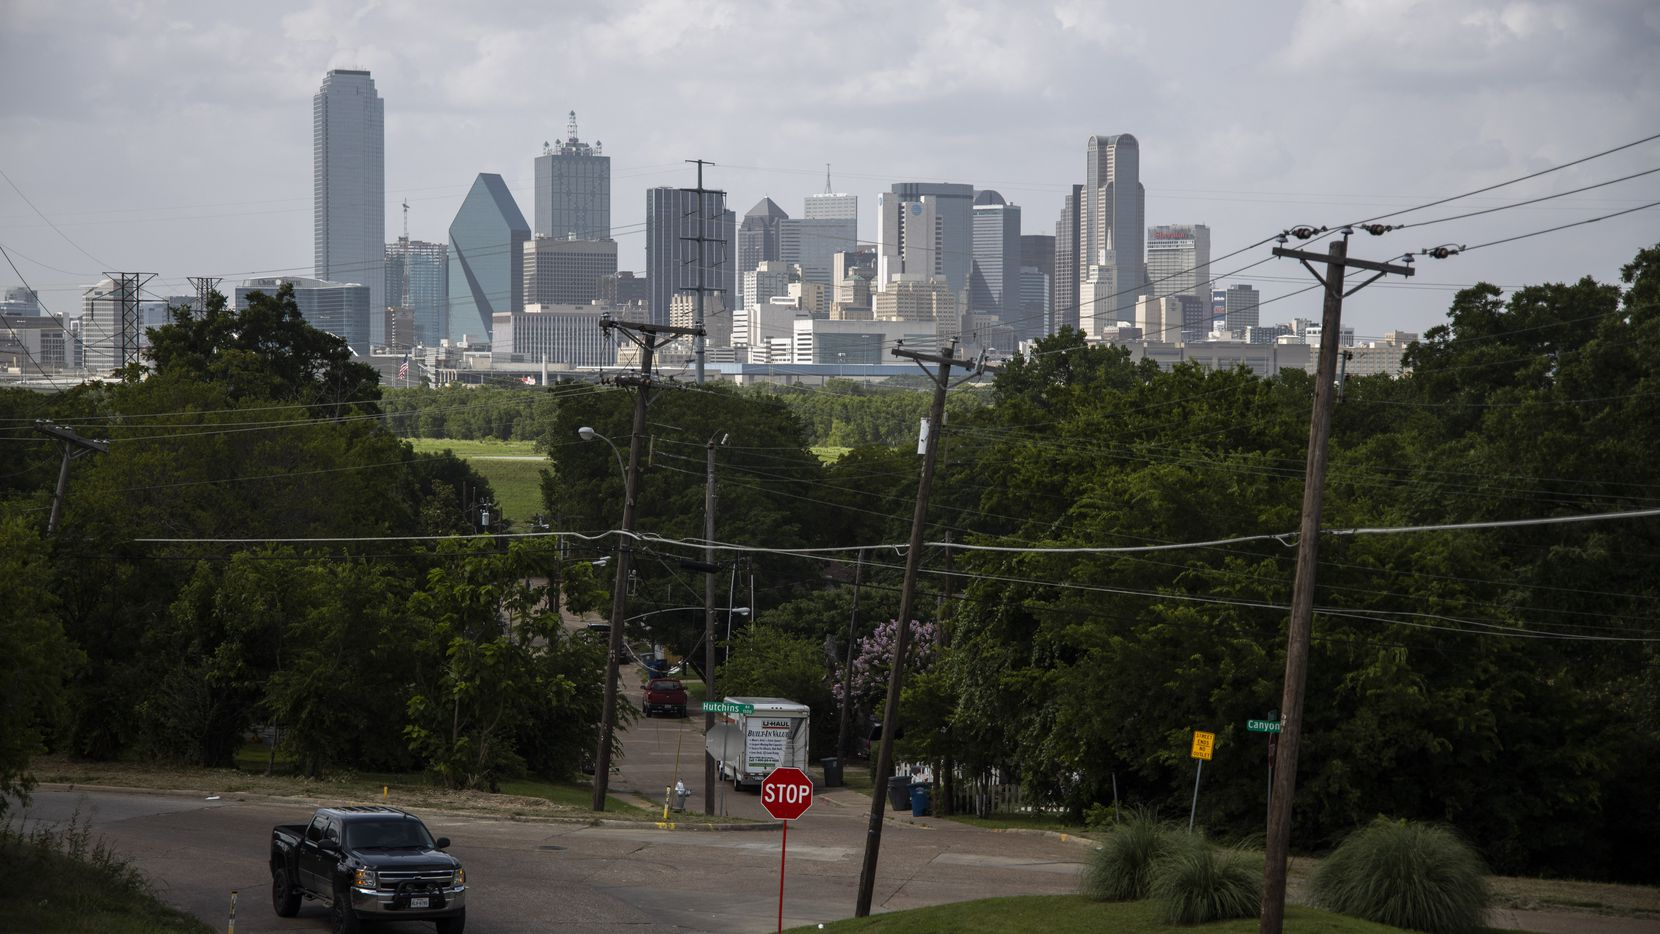 Dallas makes poor marks for economic mobility, especially in the southern half of the city. But there are a few levers city leaders can use.